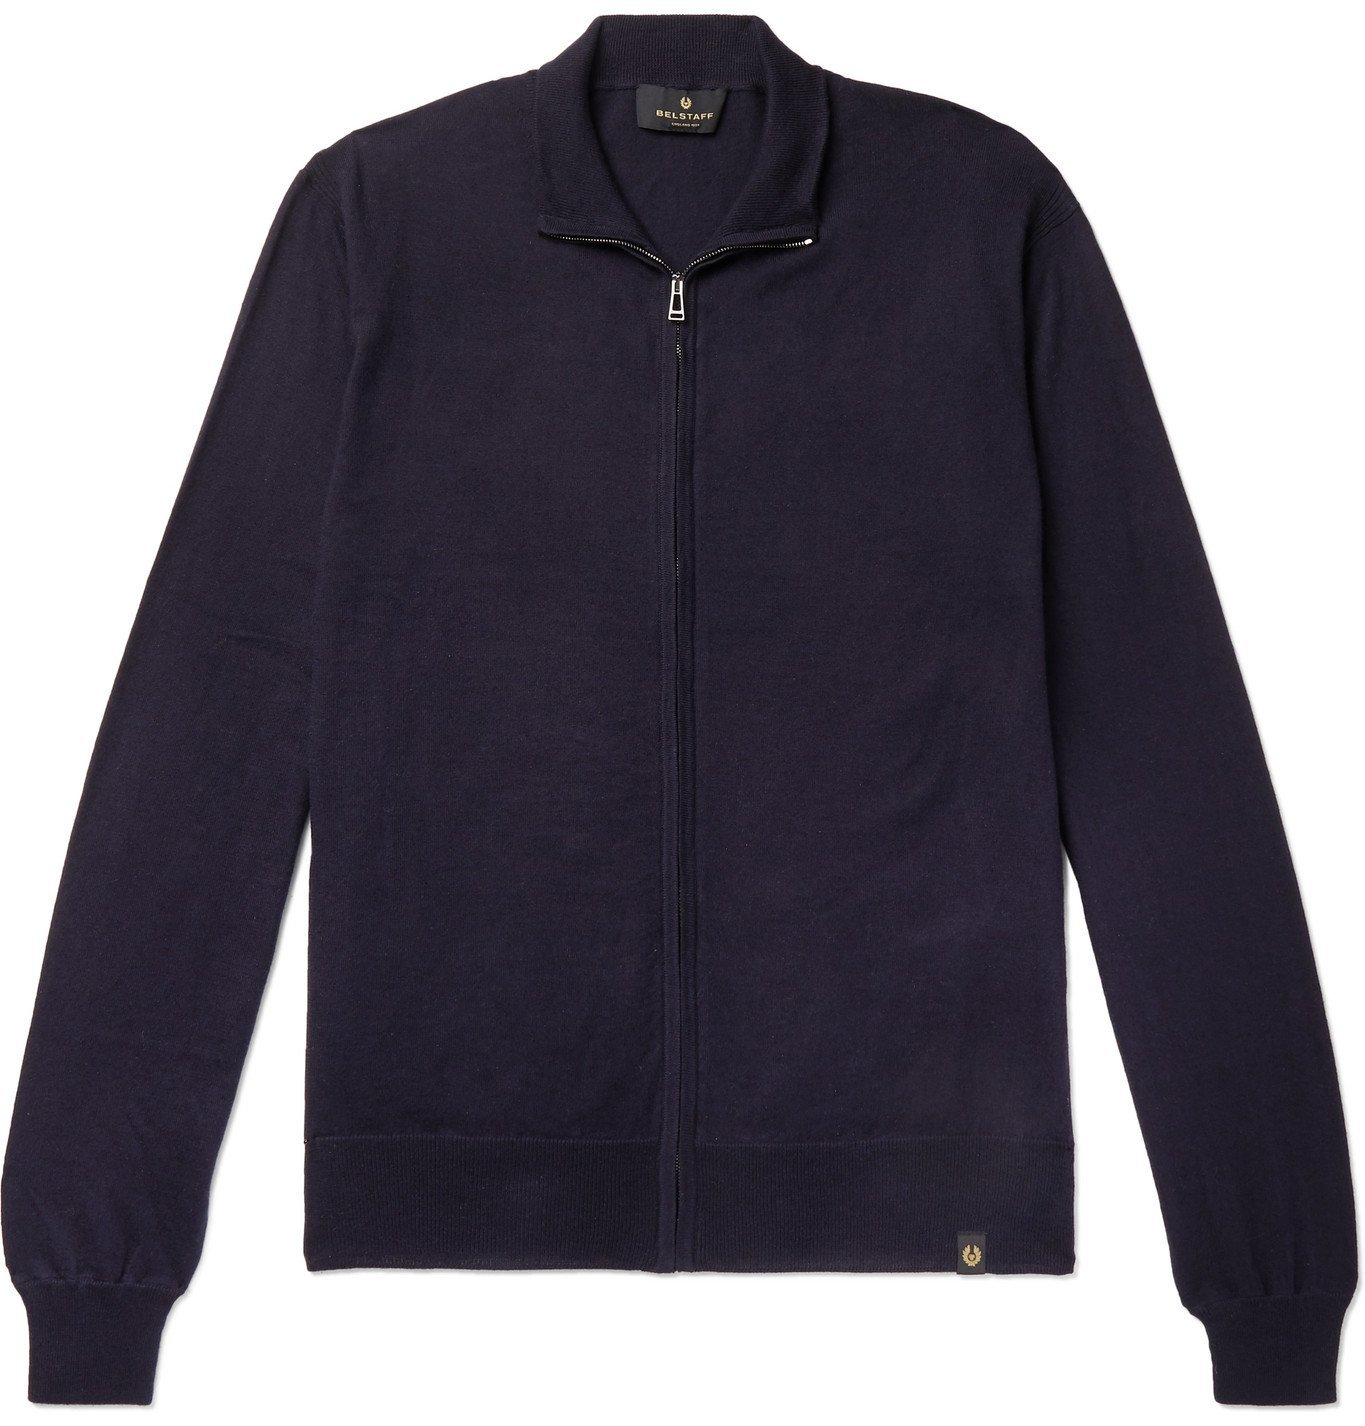 Belstaff - Slim-Fit Cotton and Cashmere-Blend Zip-Up Cardigan - Blue